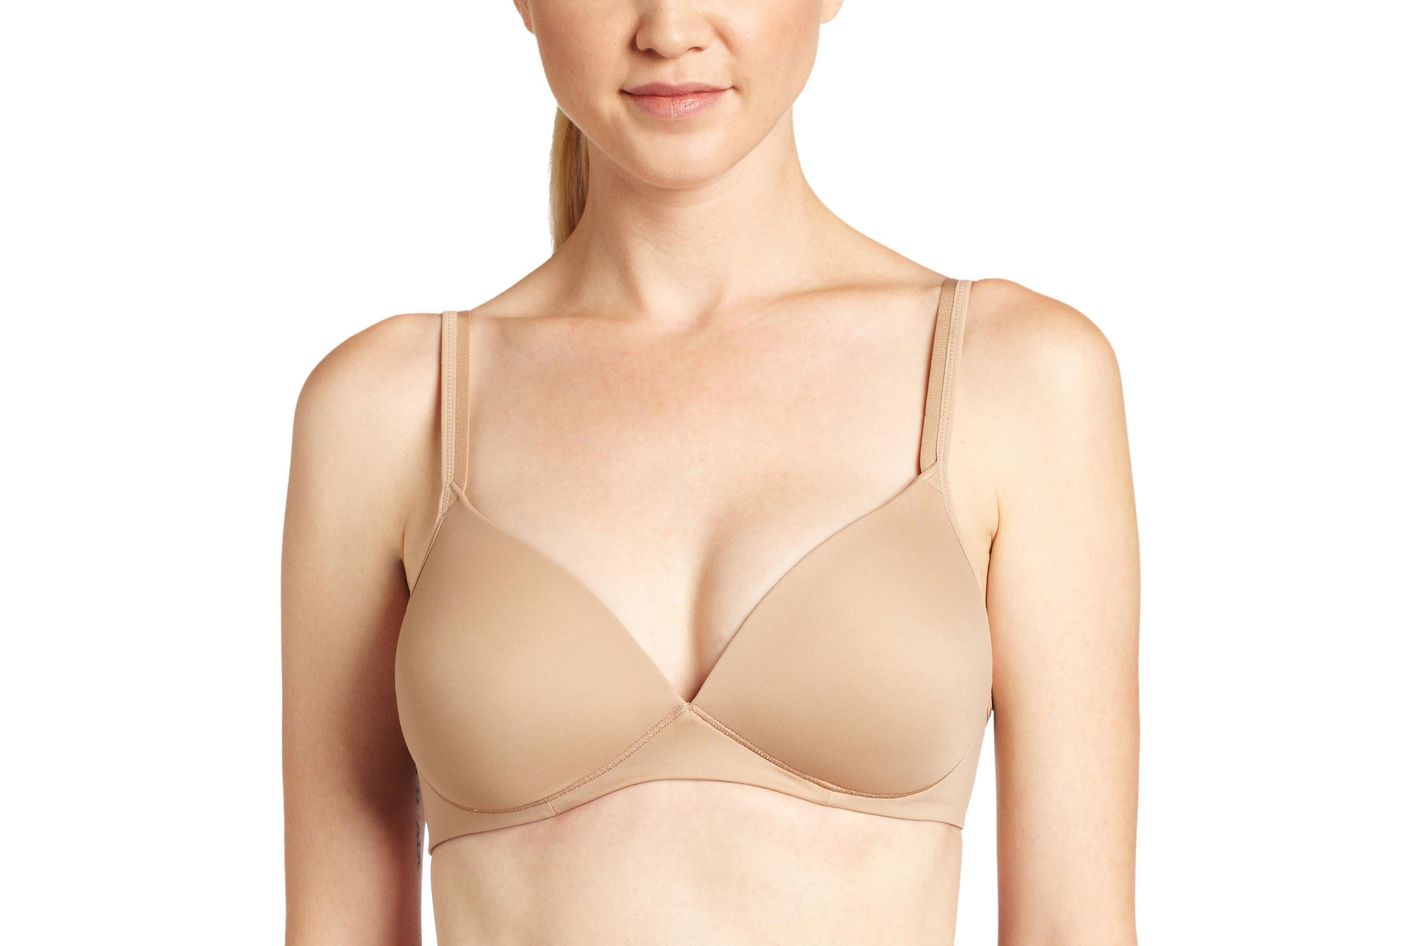 Warner's Women's Elements of Bliss Wire-Free Lift Bra